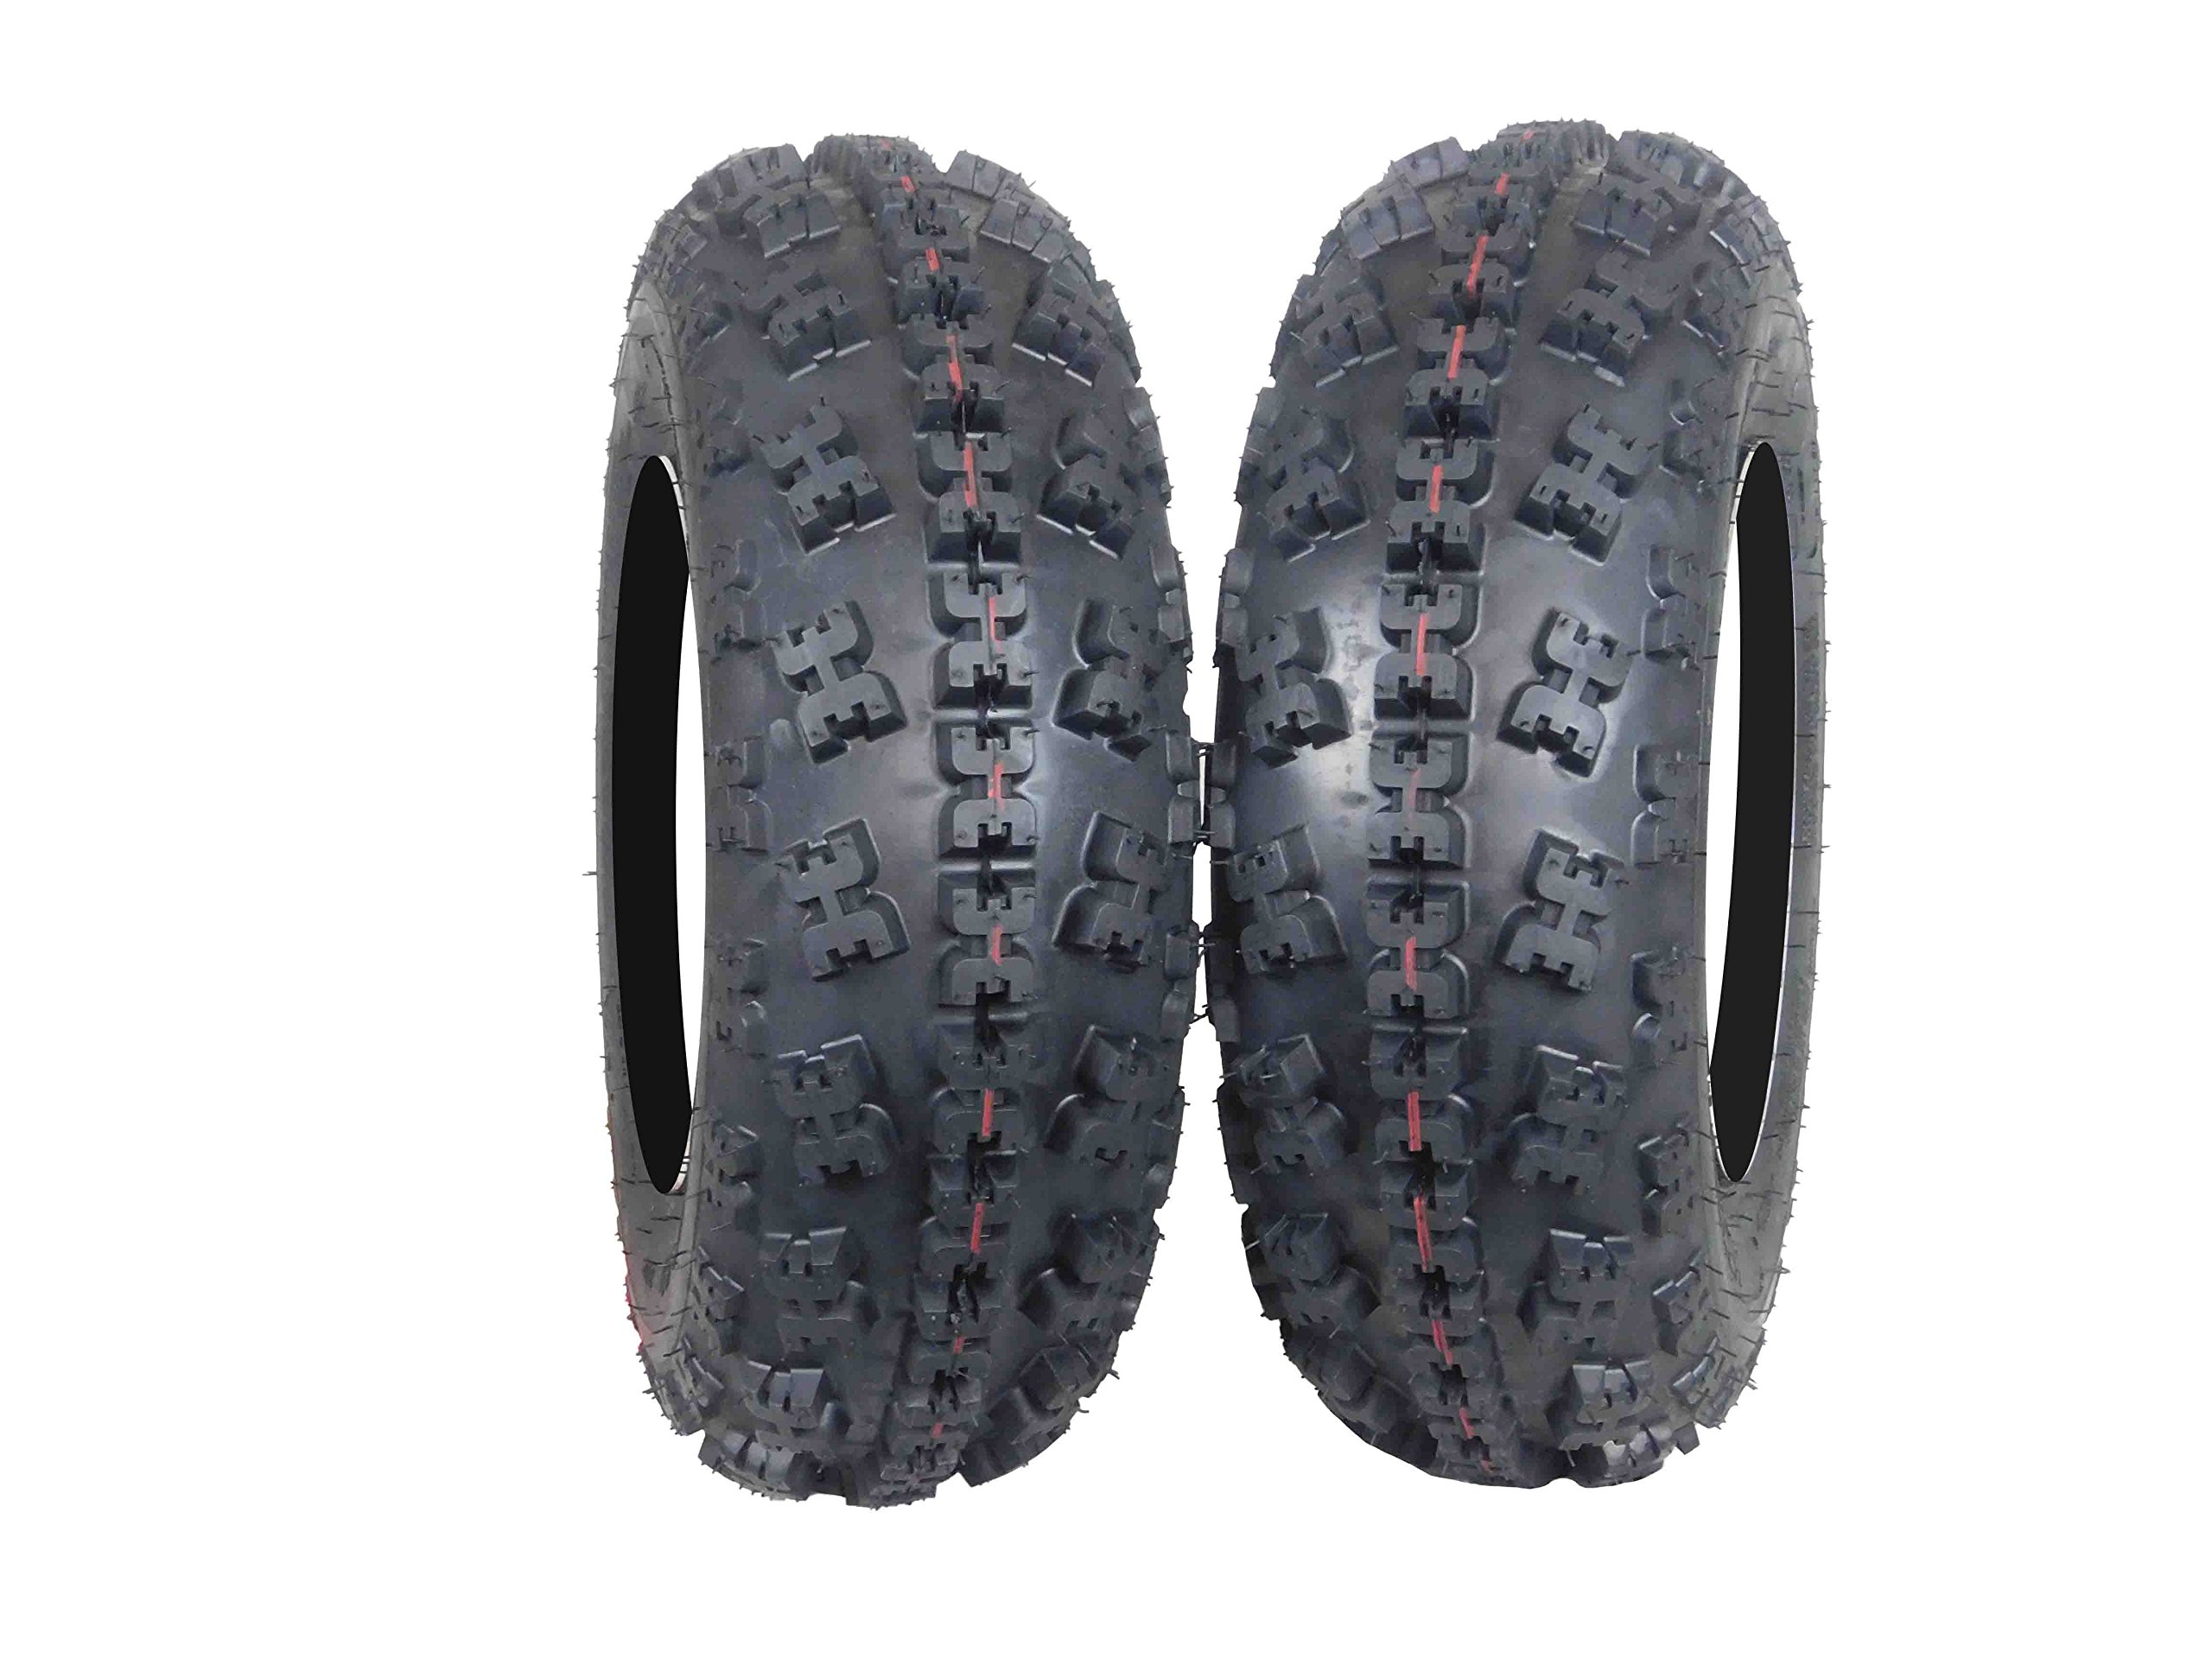 2 Set MASSFX EOS21710 ATV Tire Highly Durable 6 ply Dual Compound 21X7-10 21x7x10